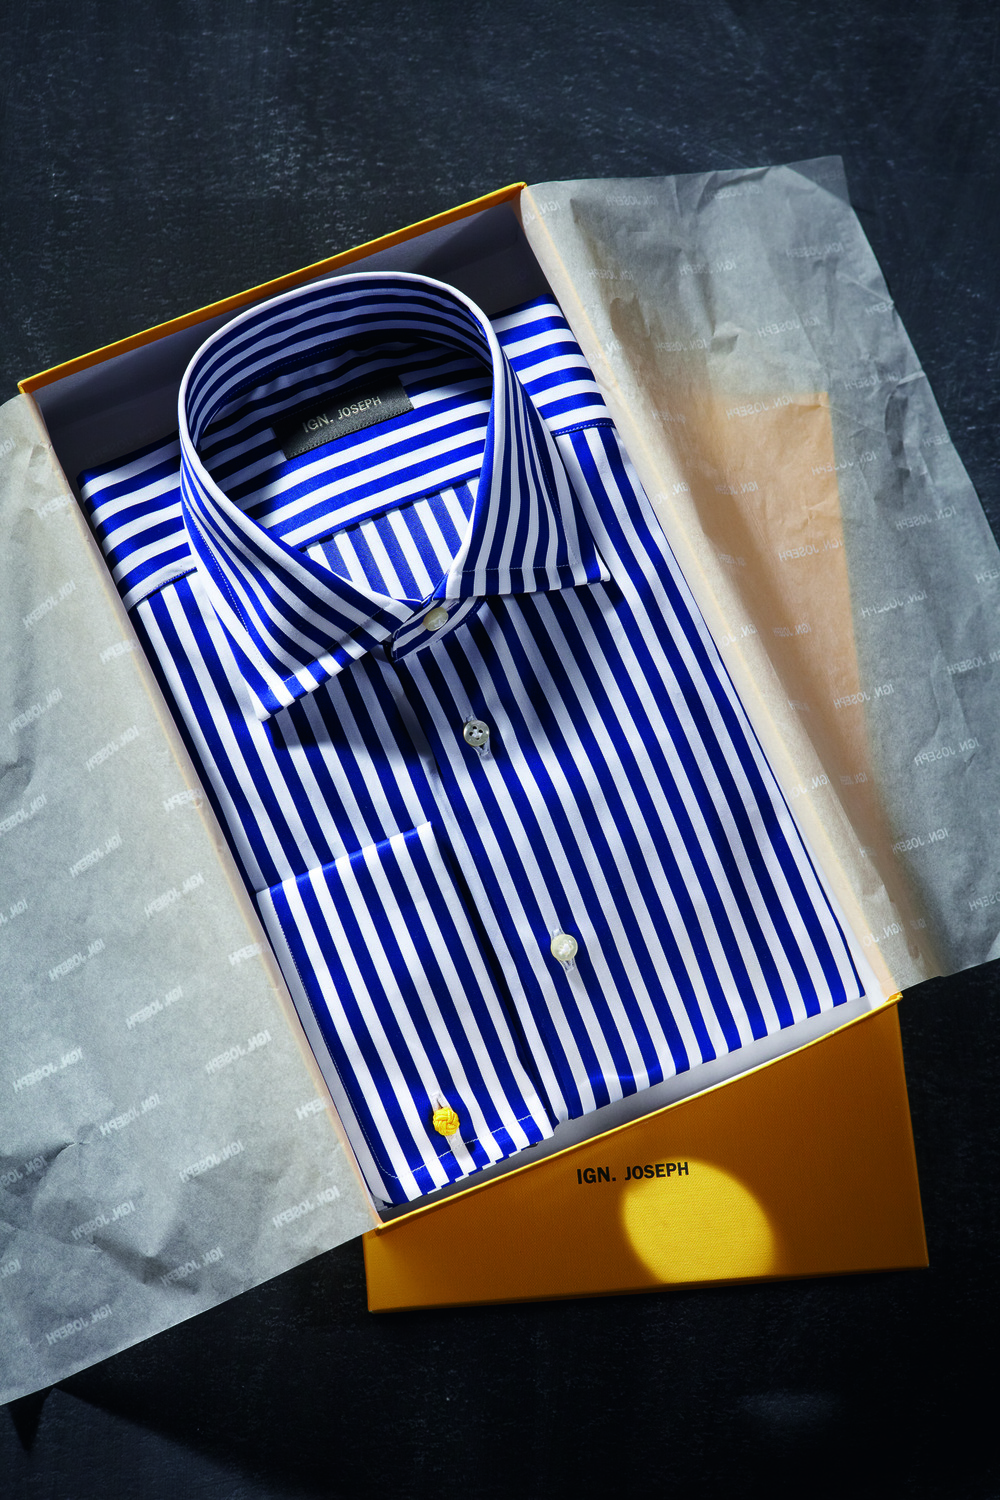 """5779b9e9c """"Whenever I travel I take a bottle of my Shirt Shampoo. I like to be  self-sufficient when I am under way. Good shoes are important and for a  long trip, ..."""